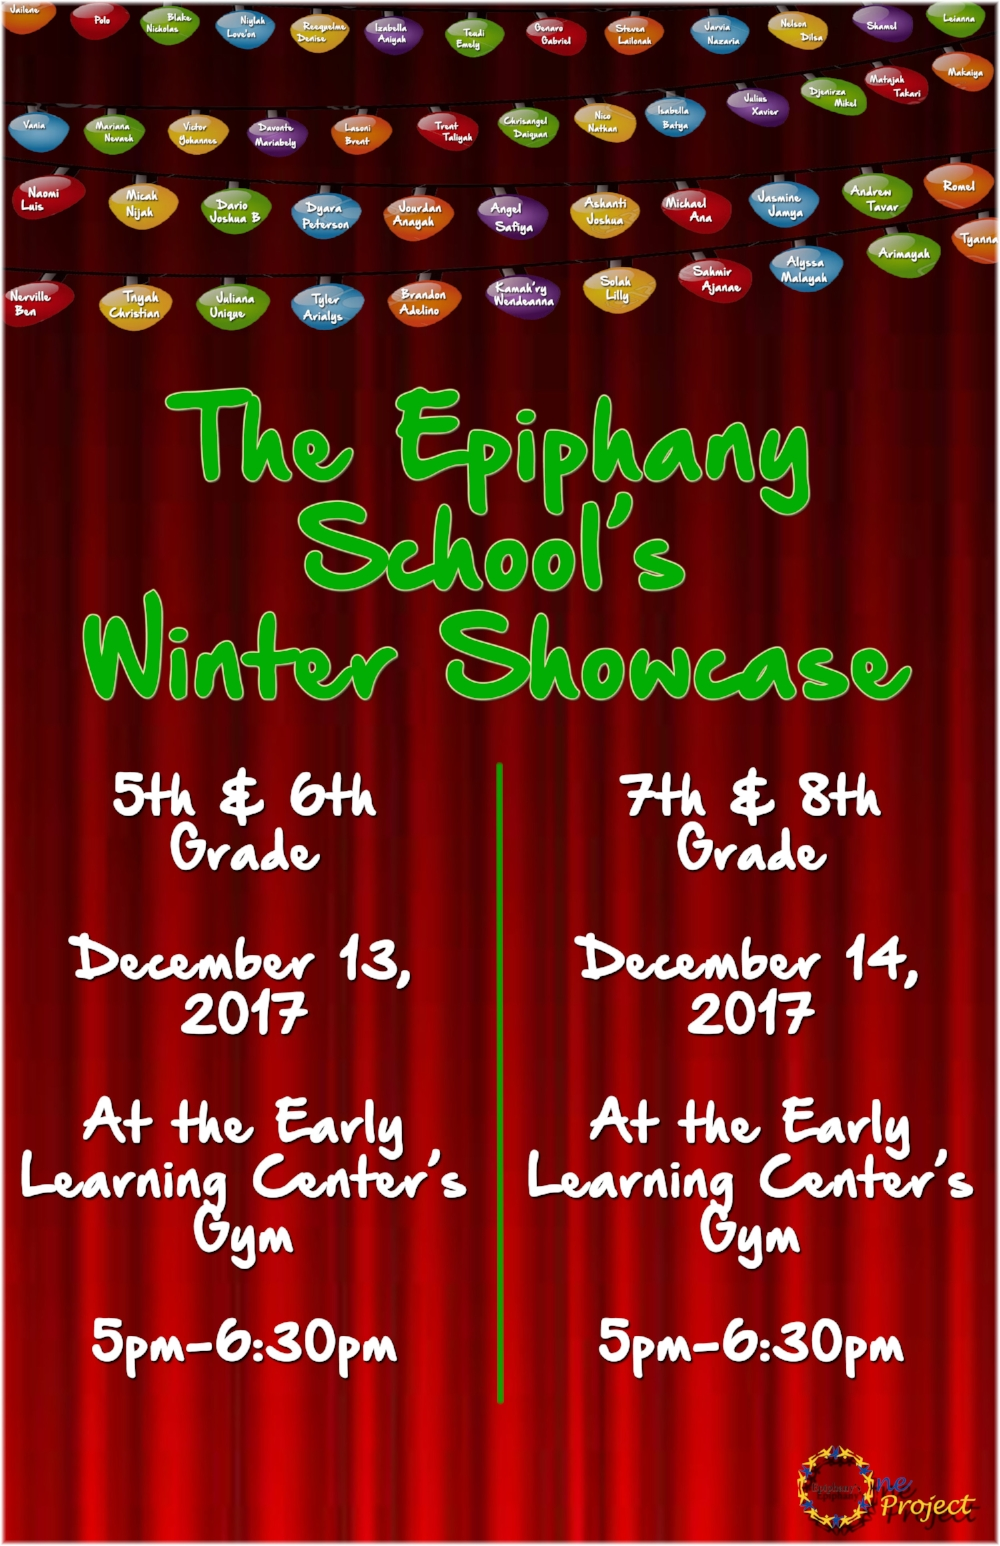 Epiphany's Winter Showcase 2017.jpg